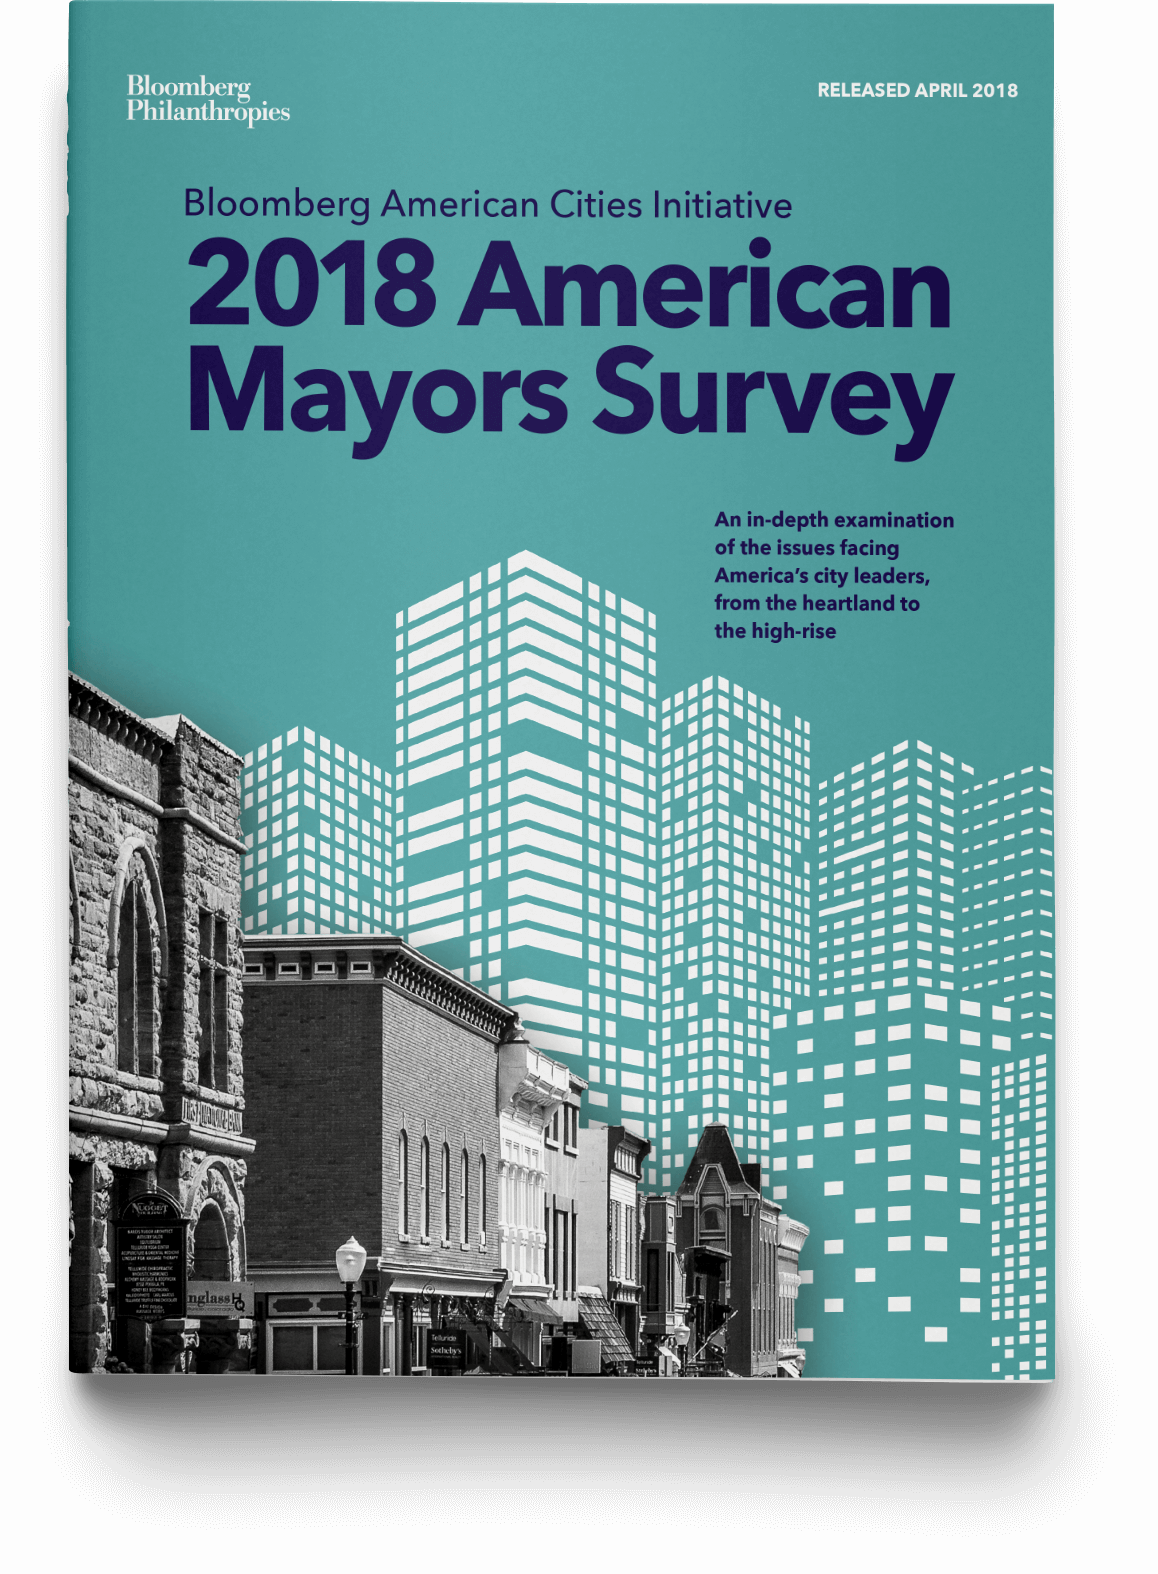 The Cover of the 2018 American Mayors Survey Report